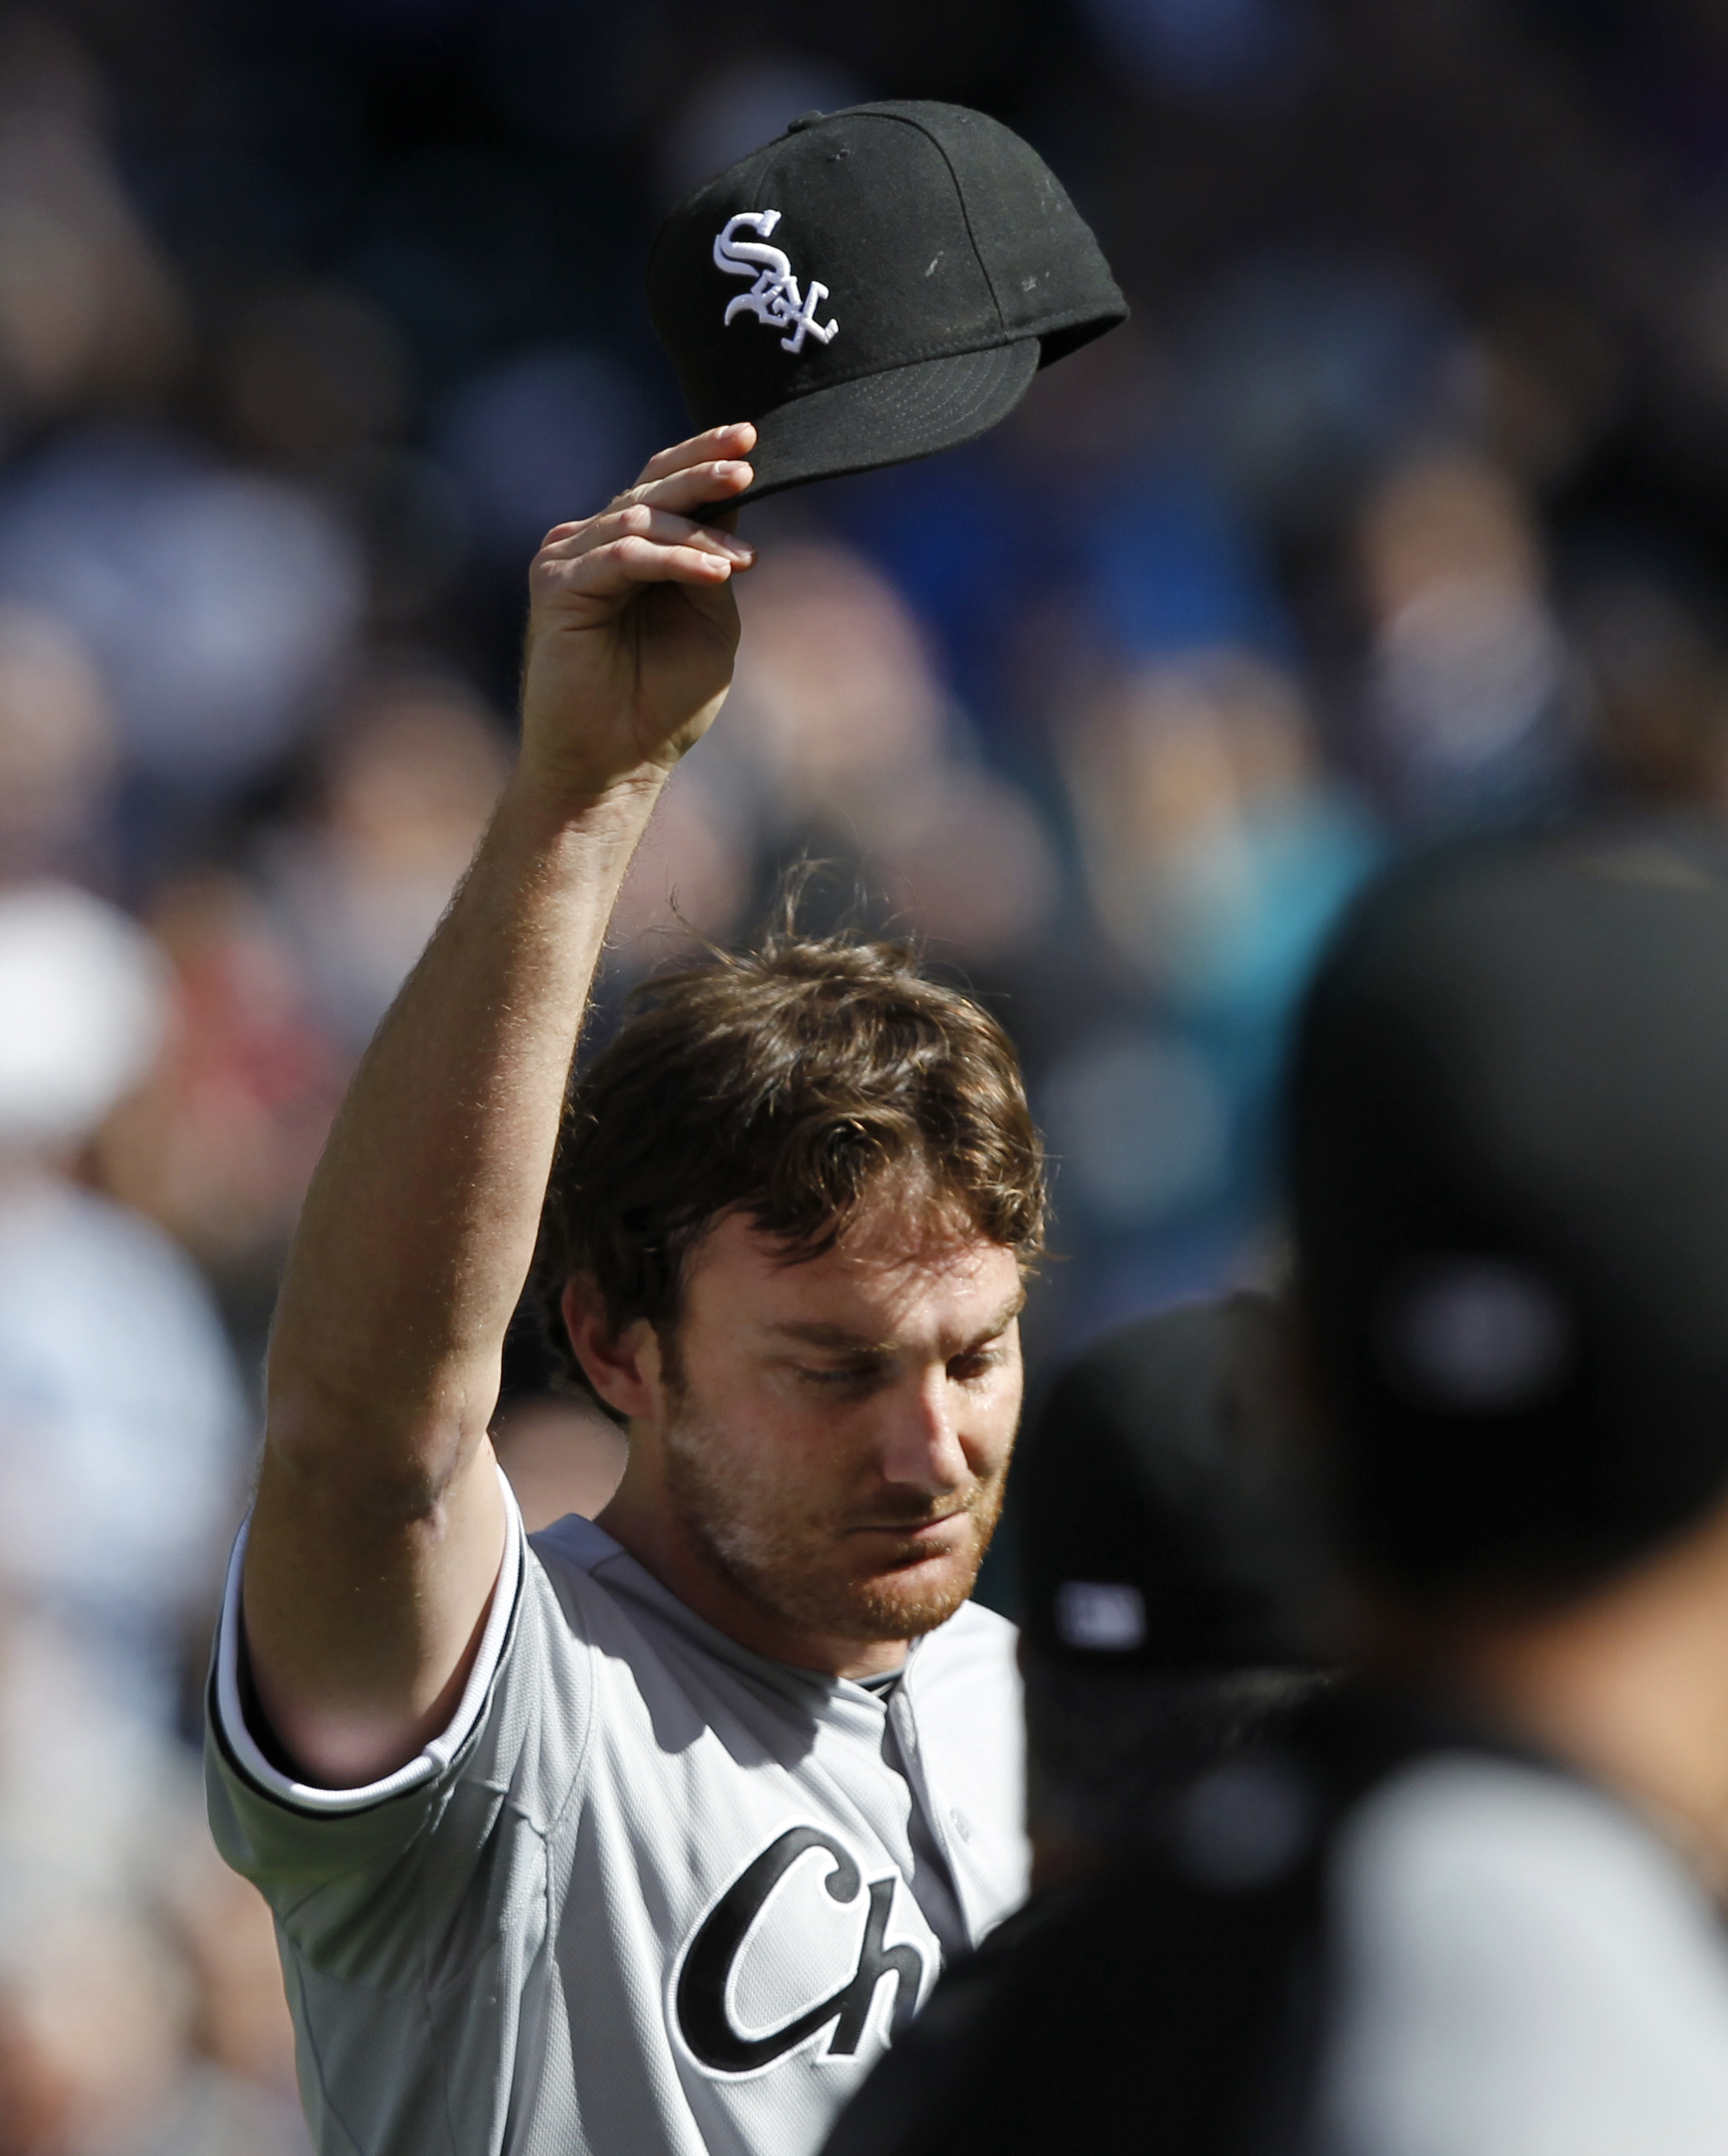 a brief history of the chicago white sox